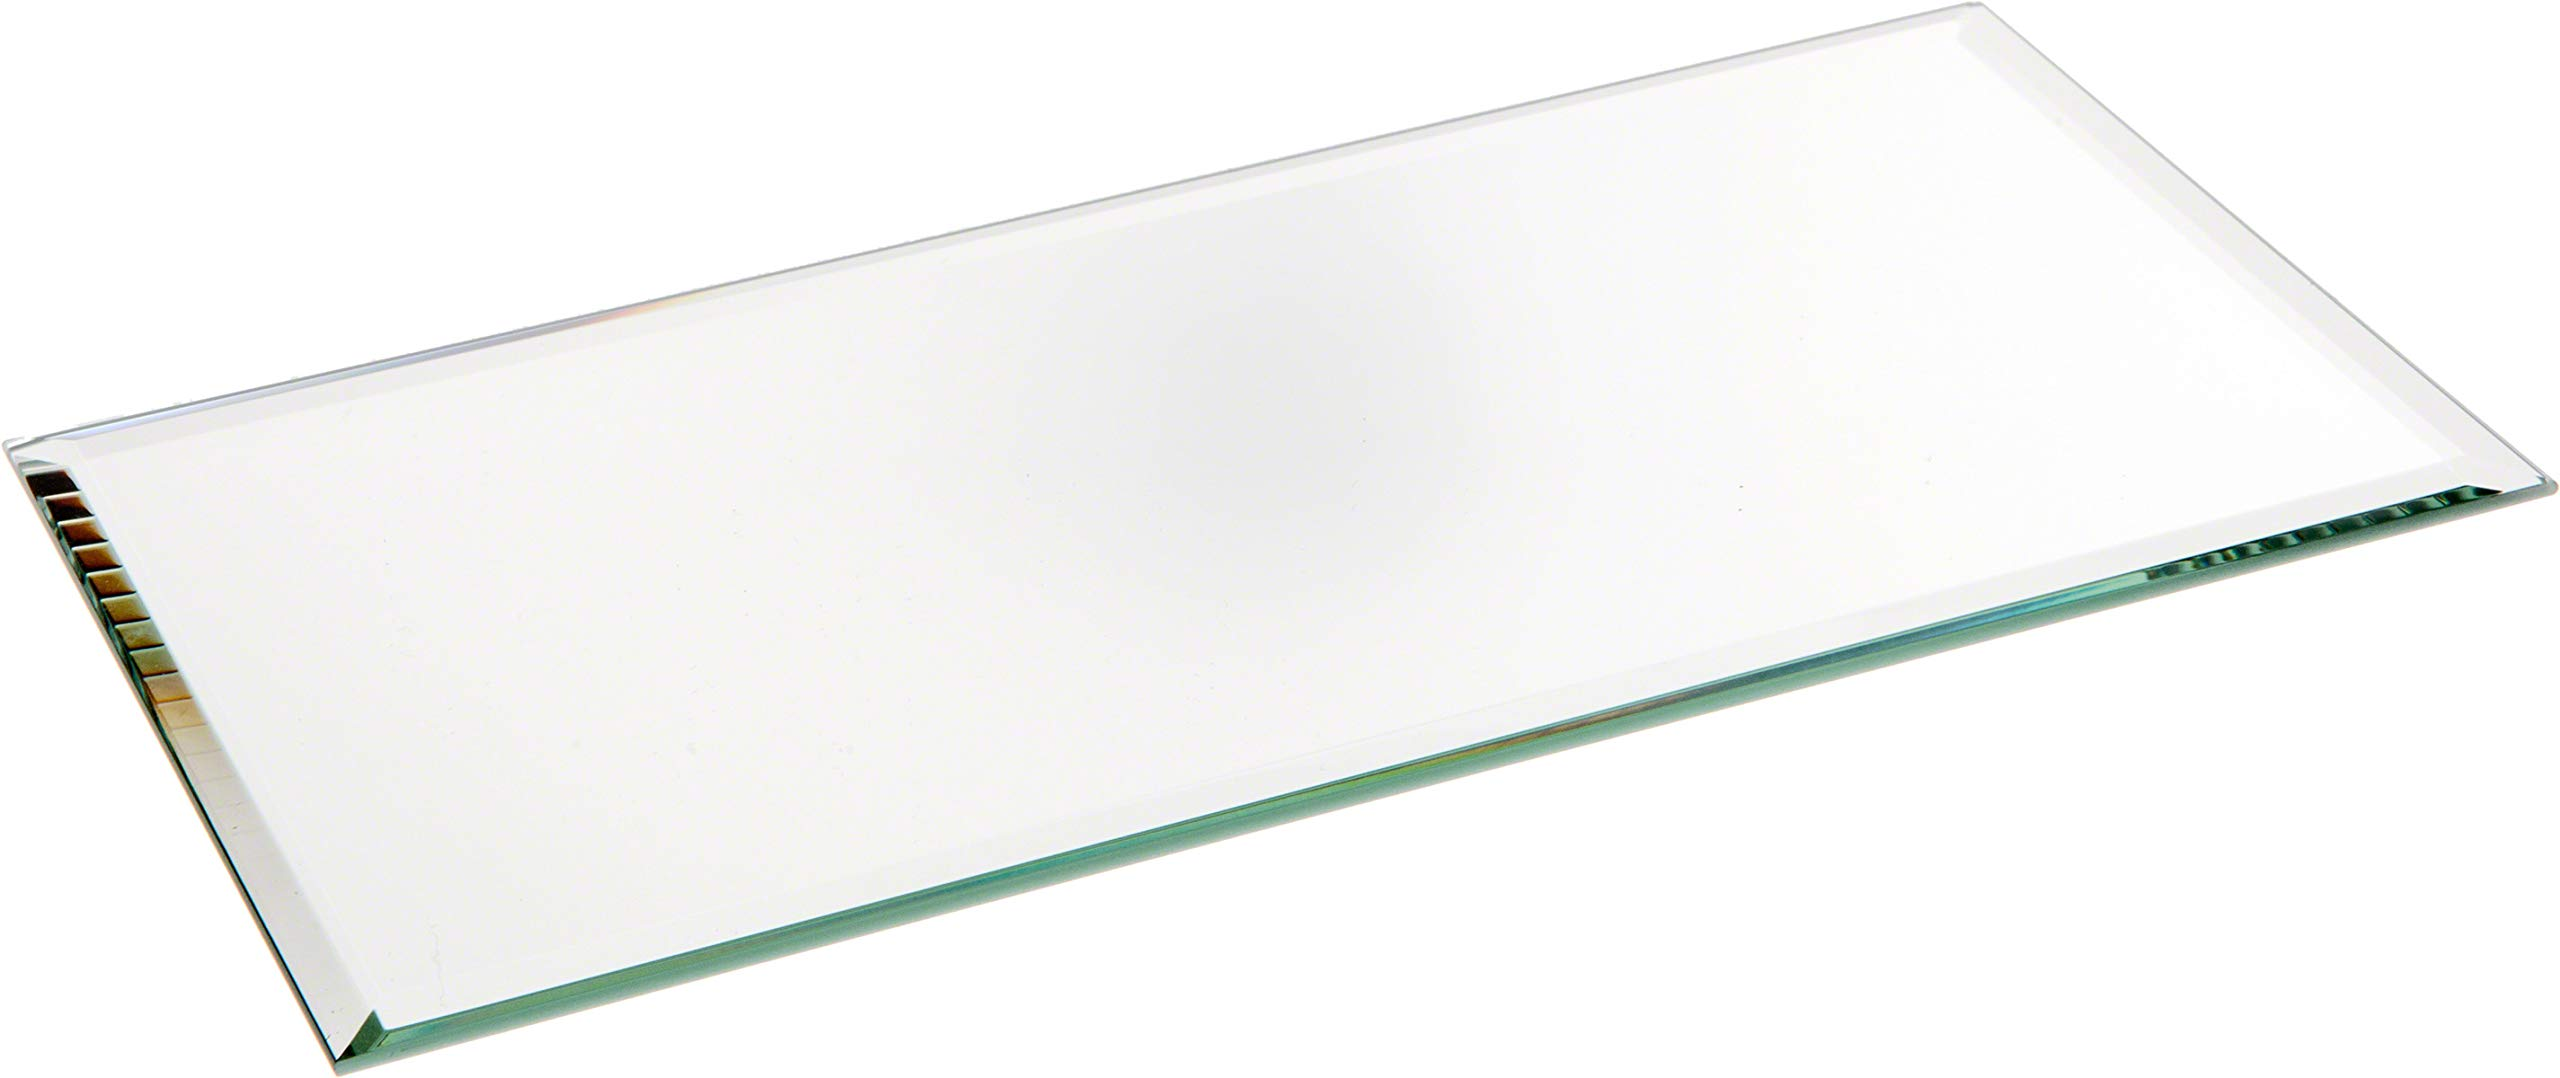 Plymor Rectangle 3mm Beveled Glass Mirror 4 Inch X 8 Inch Pack Of 3 Wall Mounted Mirrors Amazon Com Au